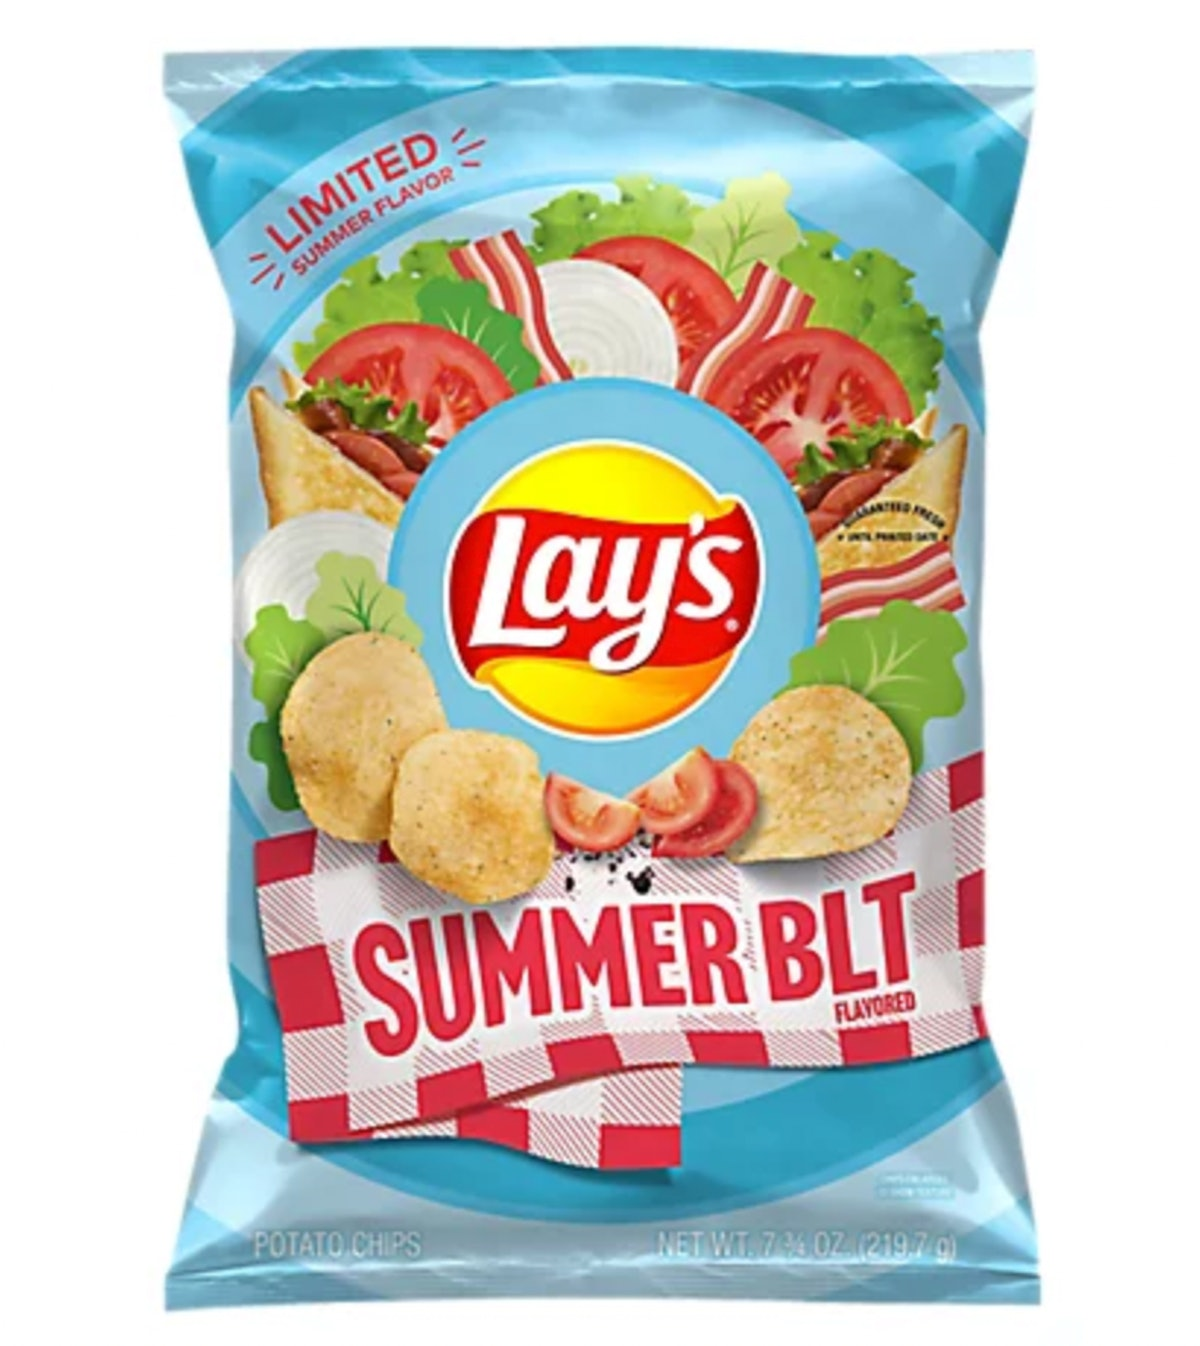 Lay's Potato Chips Summer BLT Flavored